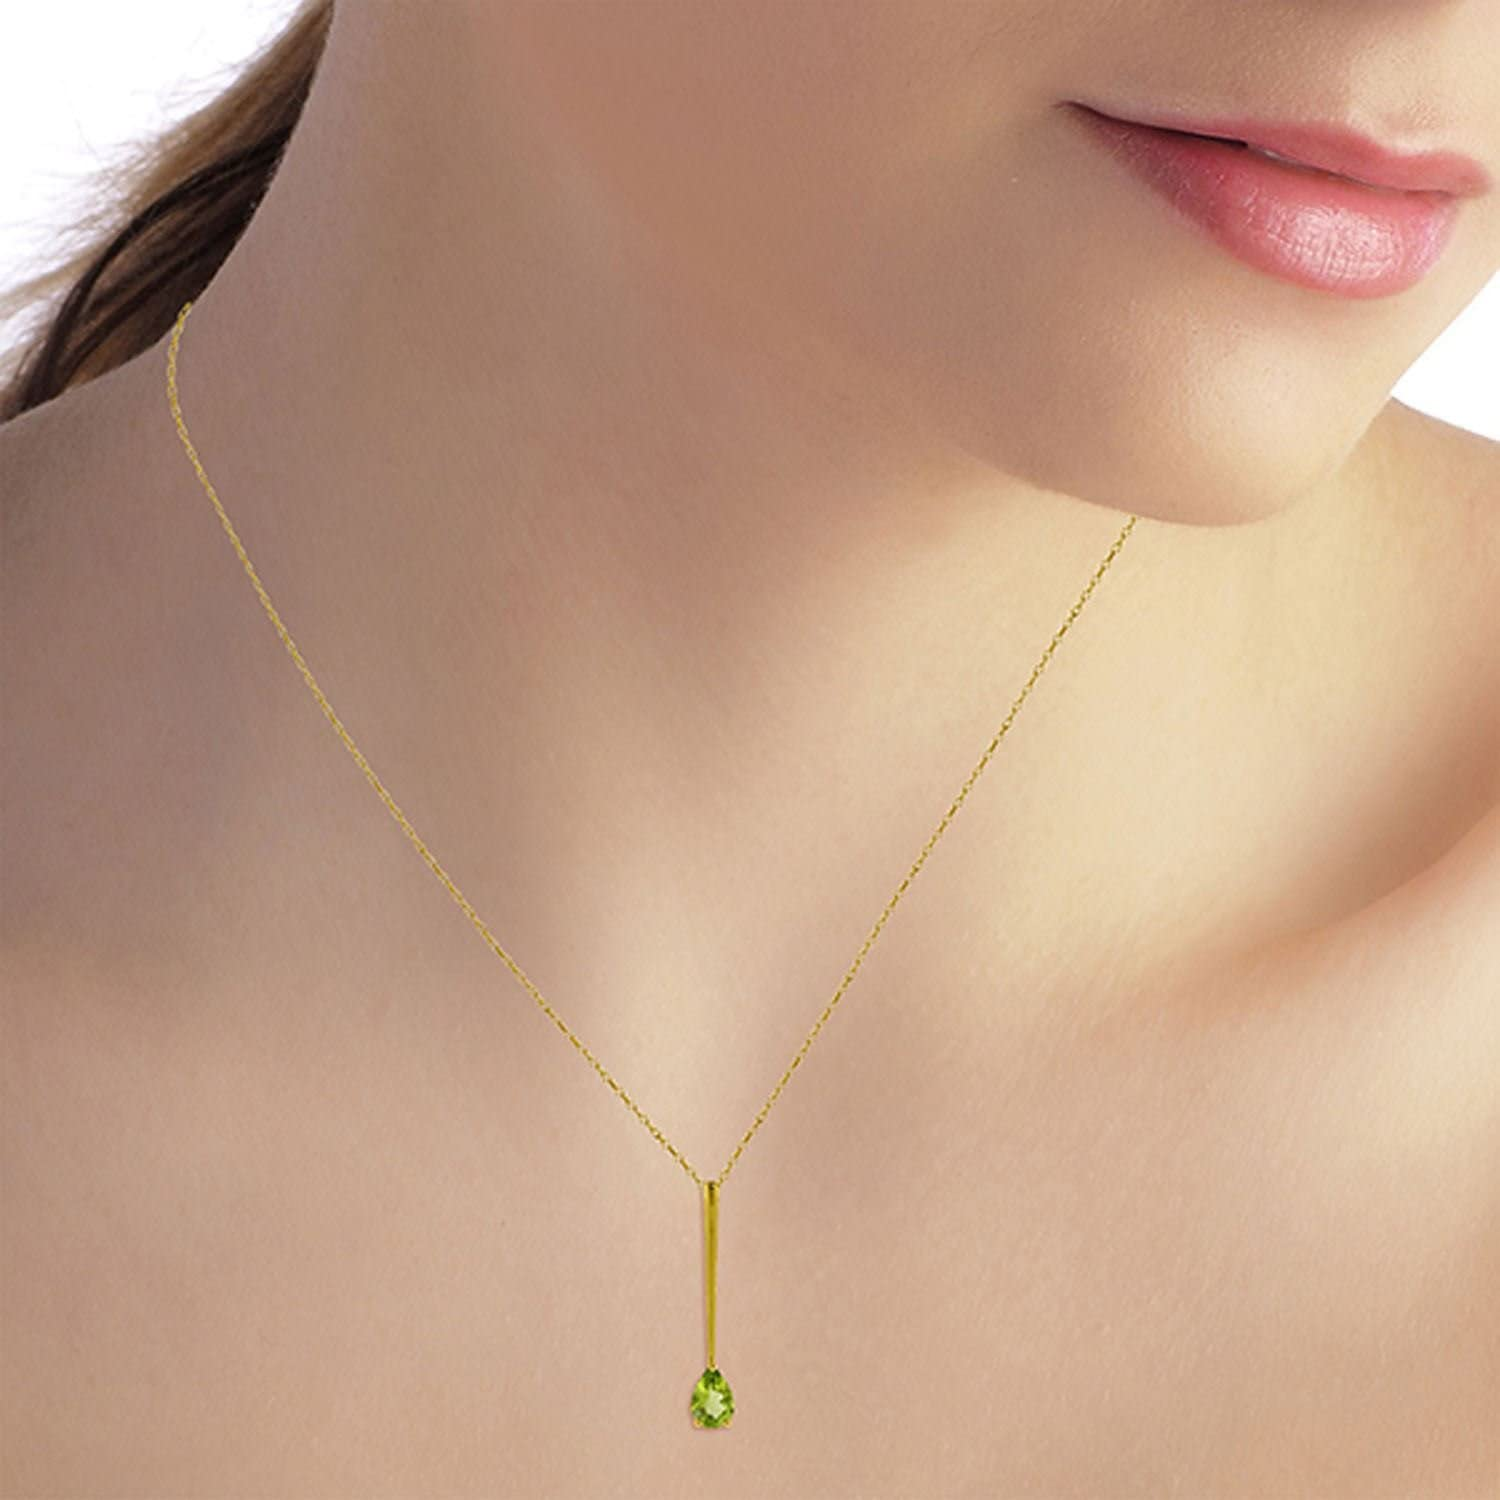 ALARRI 0.65 CTW 14K Solid Gold Enthusiast Peridot Necklace with 18 Inch Chain Length